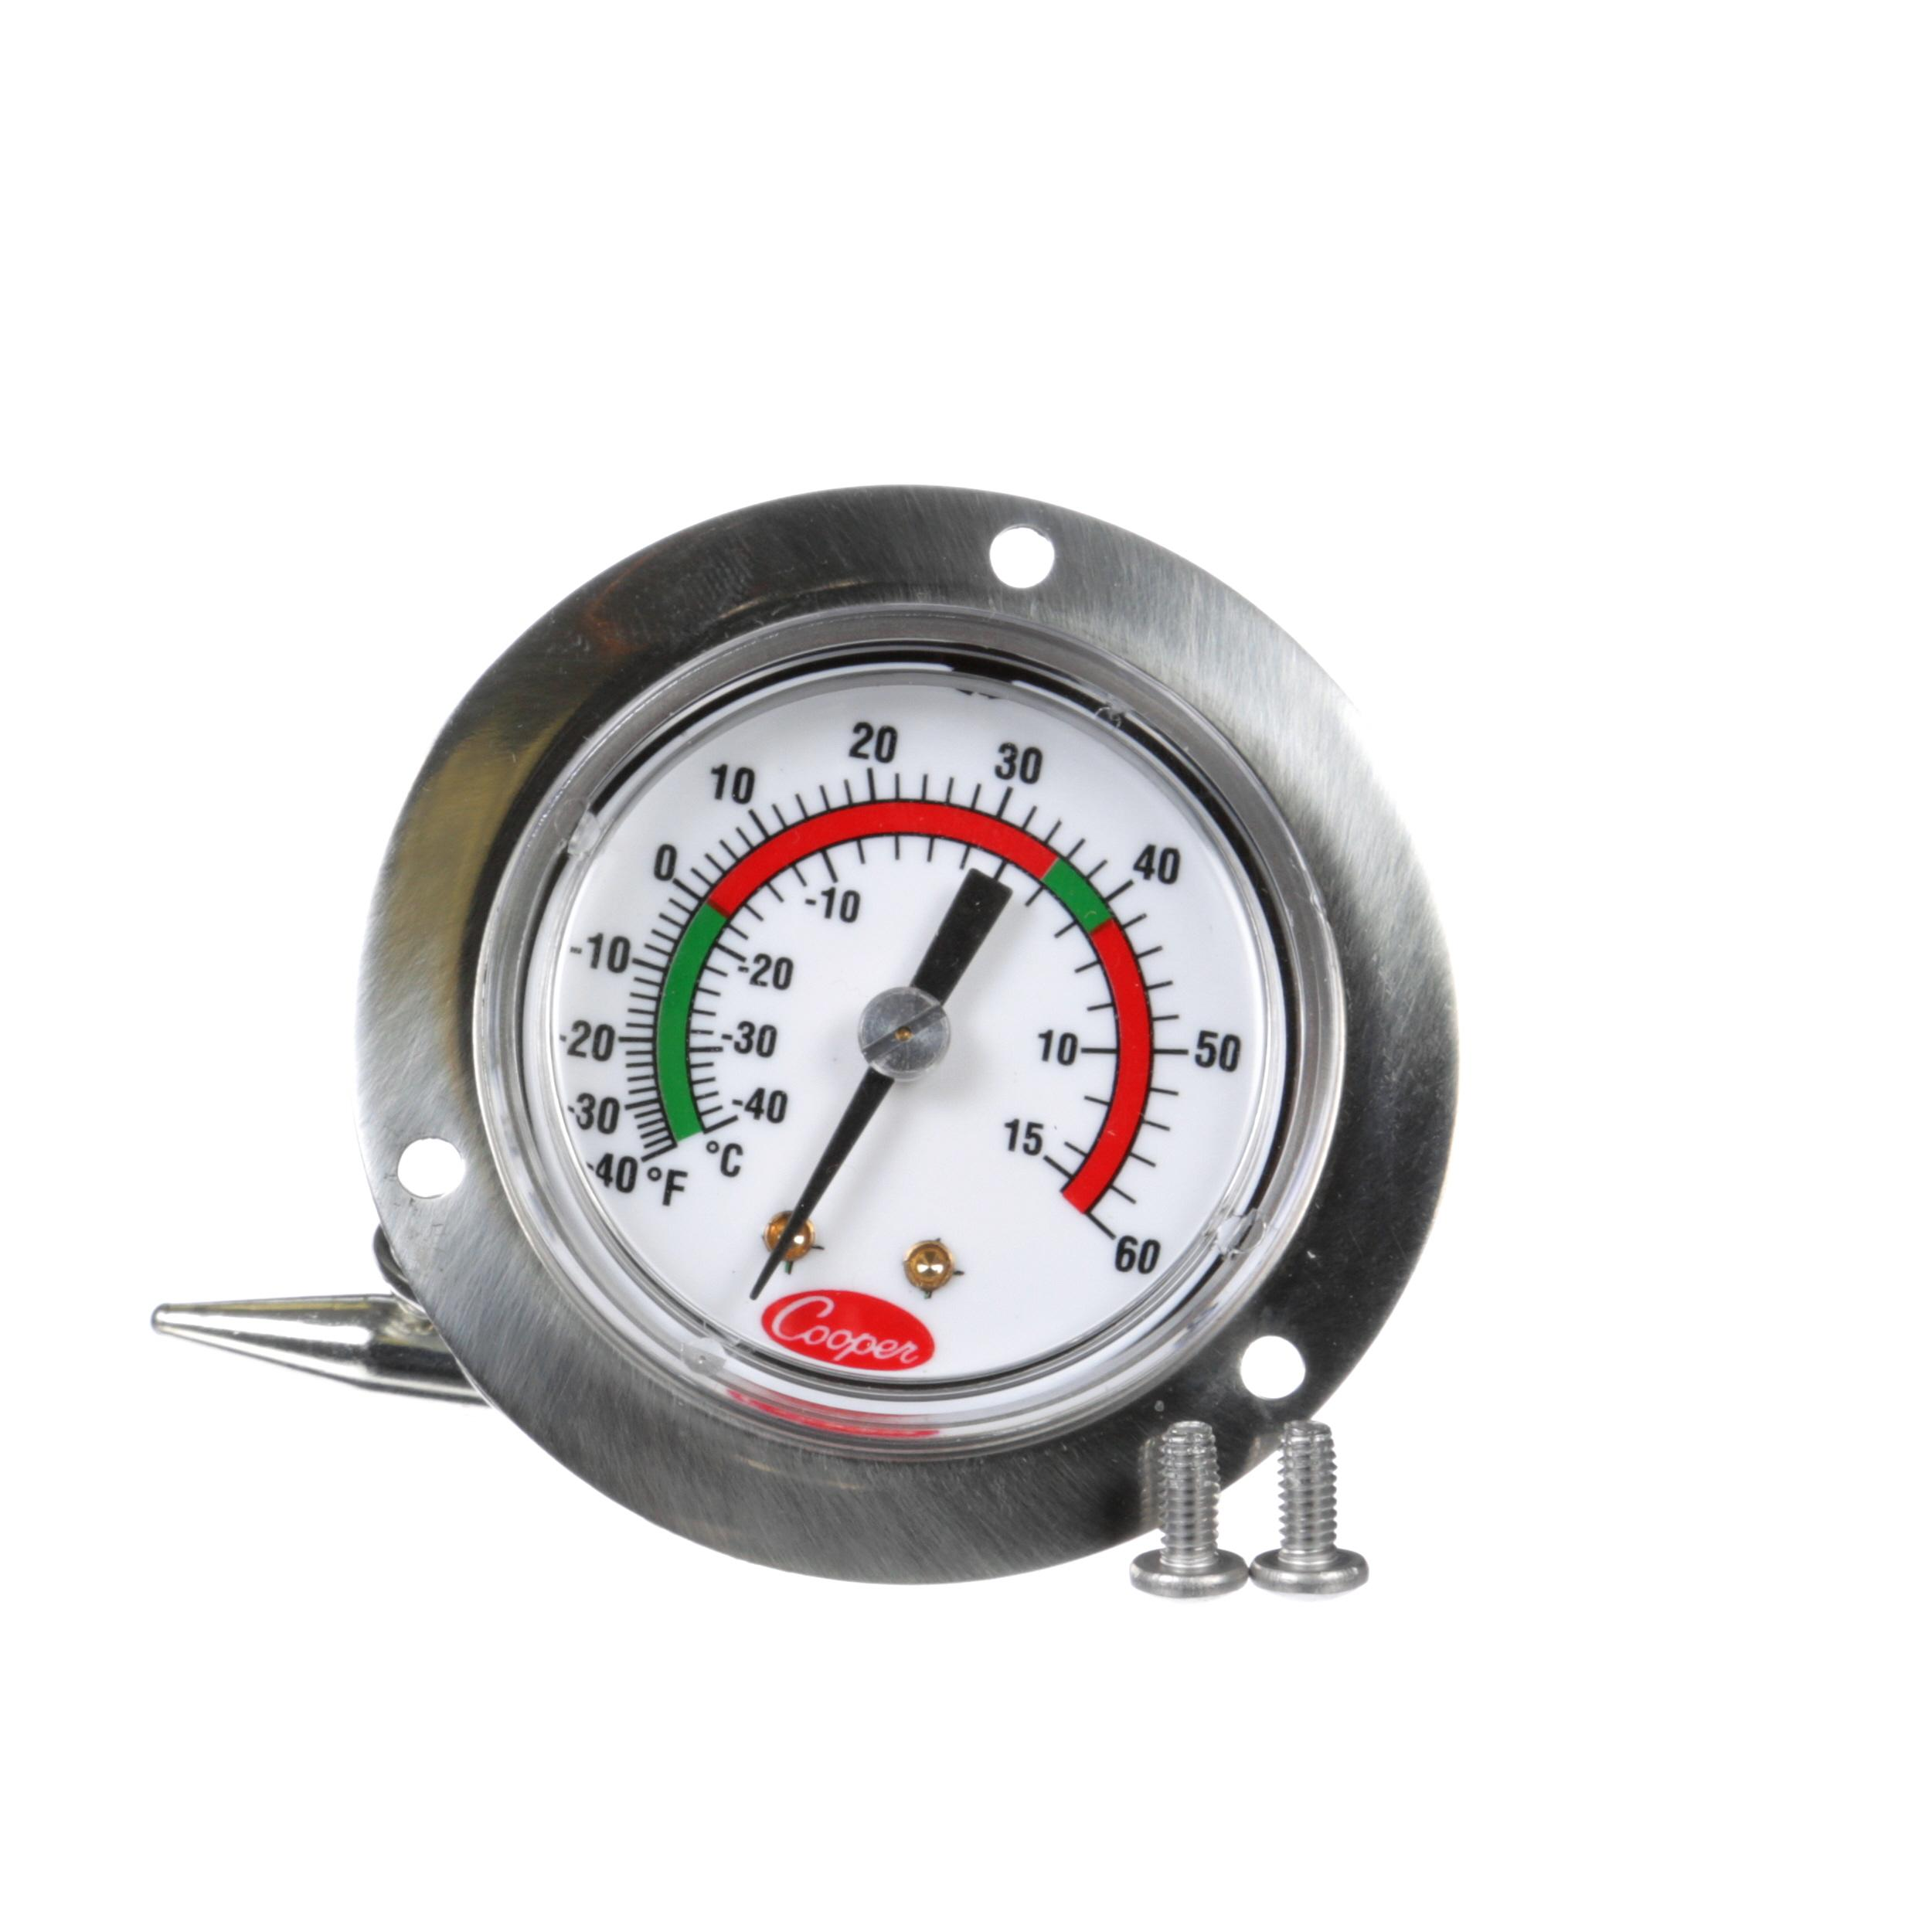 TRAULSEN DIAL THERMOMETER